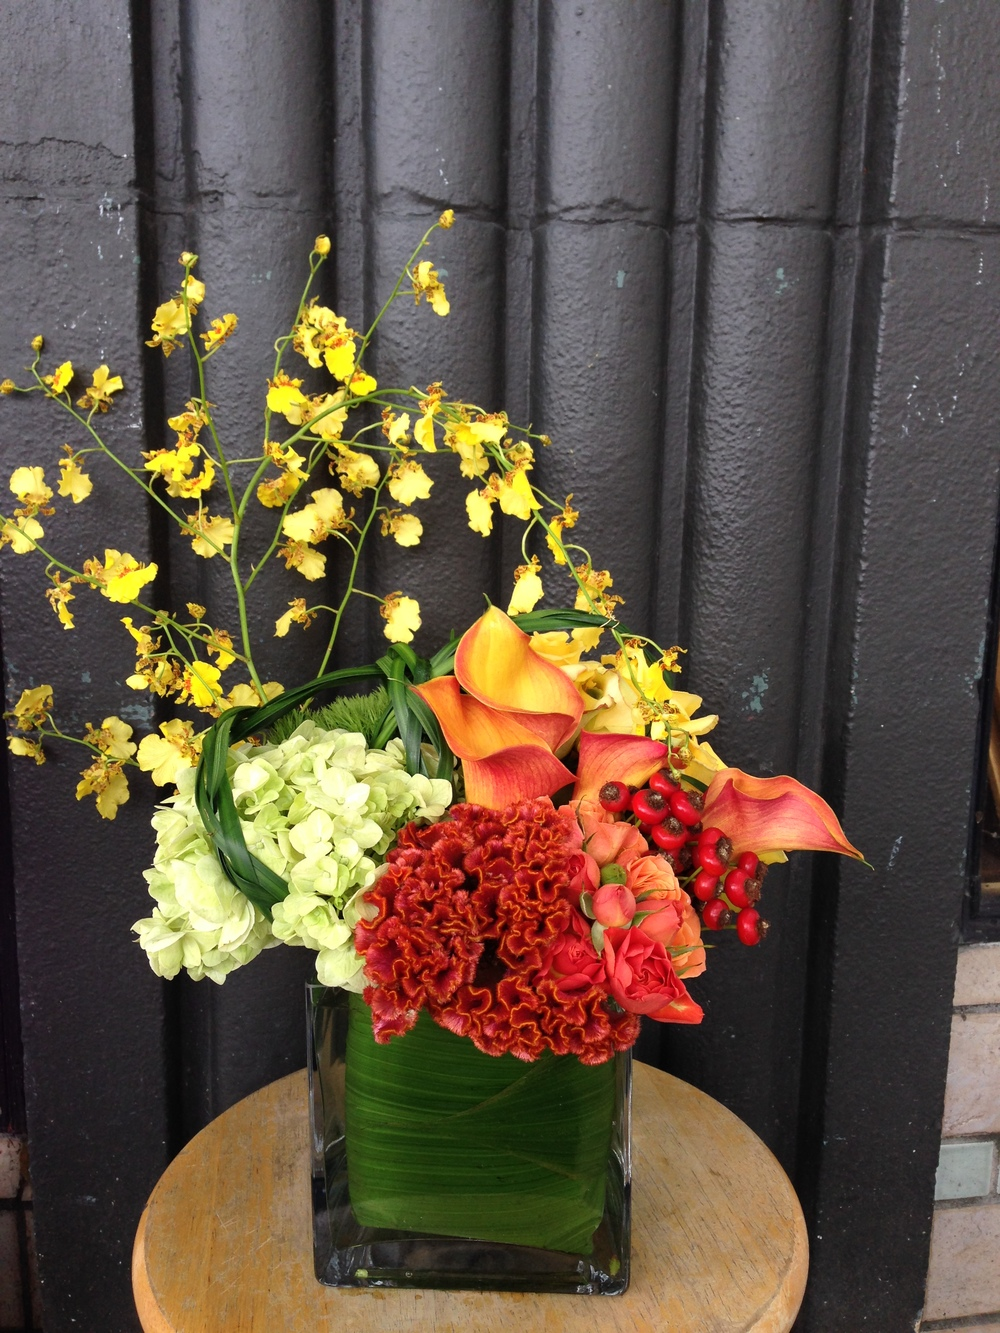 Brilliant rooster comb, calla lilies and 'dancing lady' orchids come together for a robust fall palette